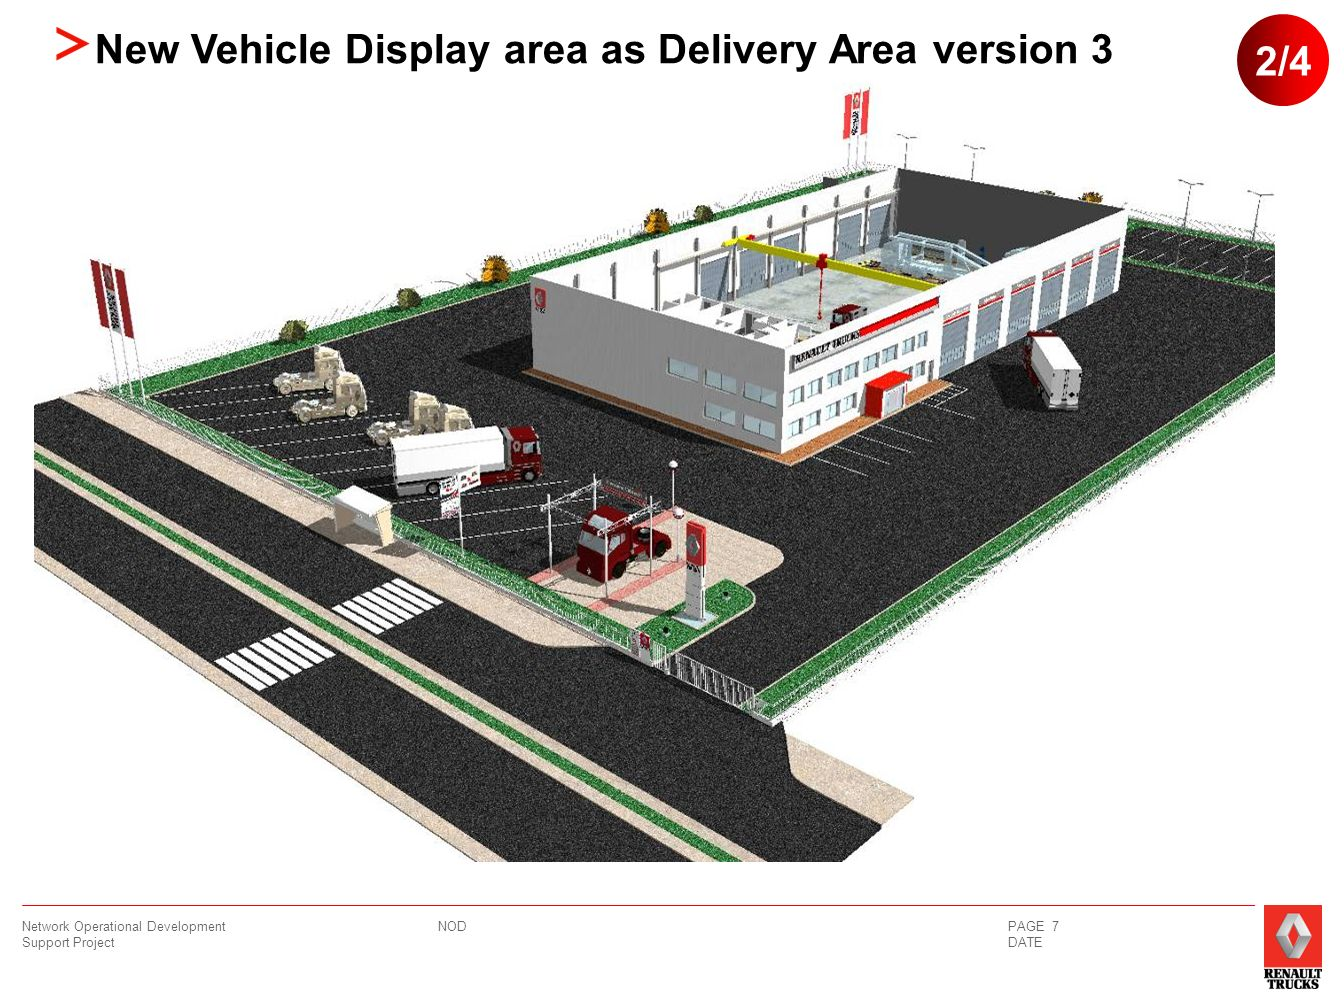 NOD Network Operational Development Support Project PAGE 8 DATE Vehicle Delivery Strip Sign 4000 X 900 Vehicle Delivery Strip Sign 4000 X 900 Lighting Customer Parking New Vehicle Display area as Delivery Area version 3 3/4